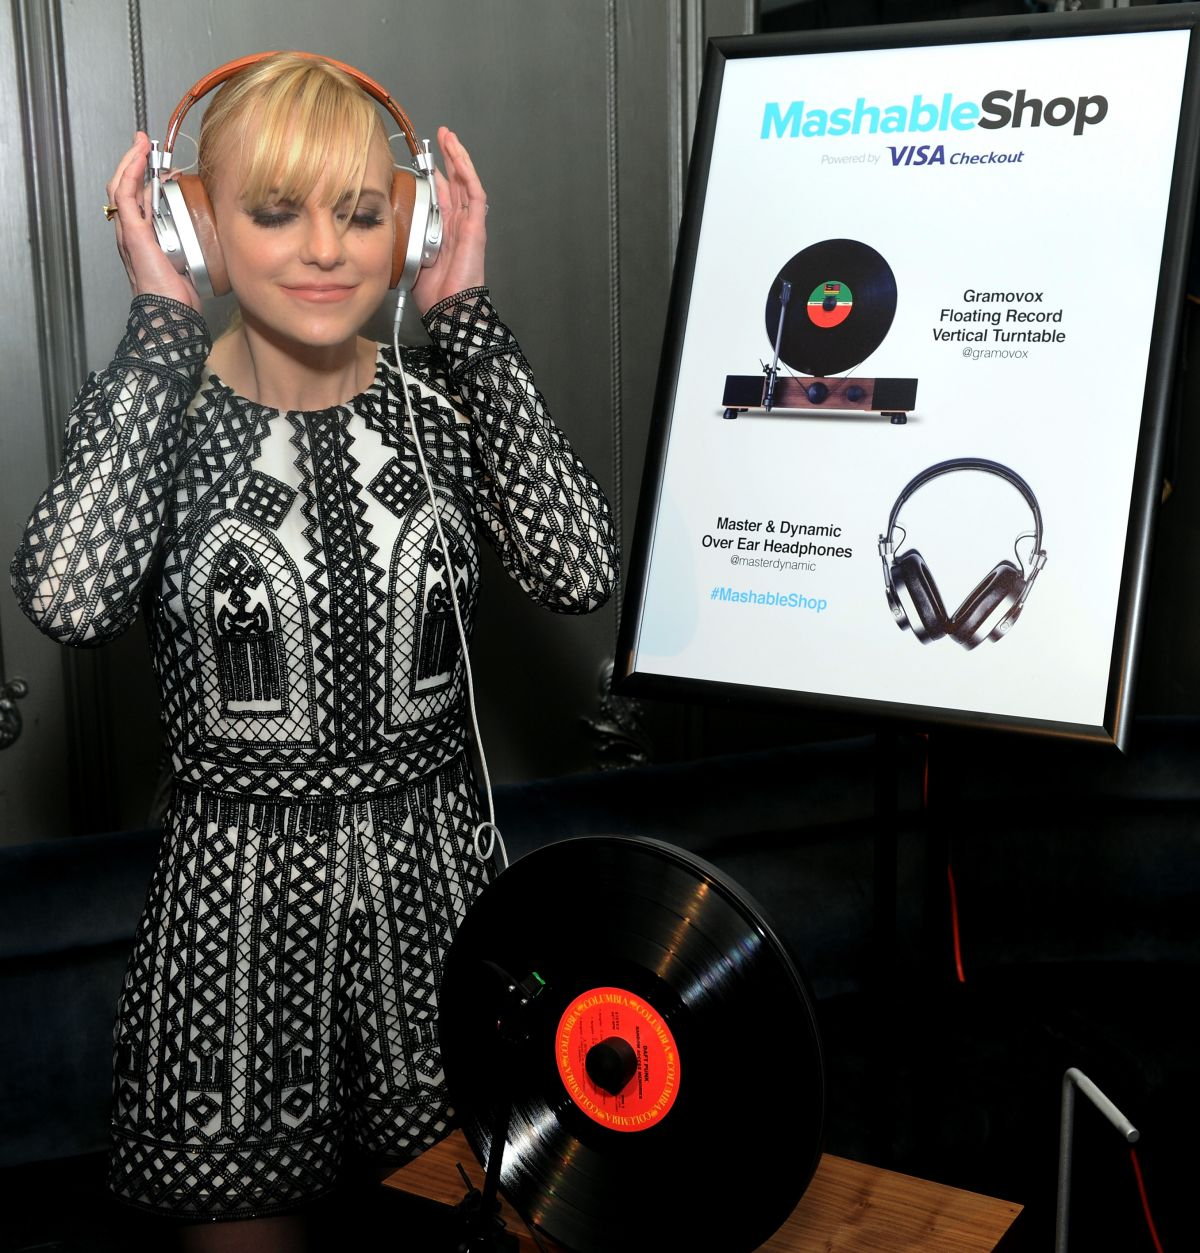 anna-faris-at-mashable-shop-launch-event-in-new-york-12-15-2015_9